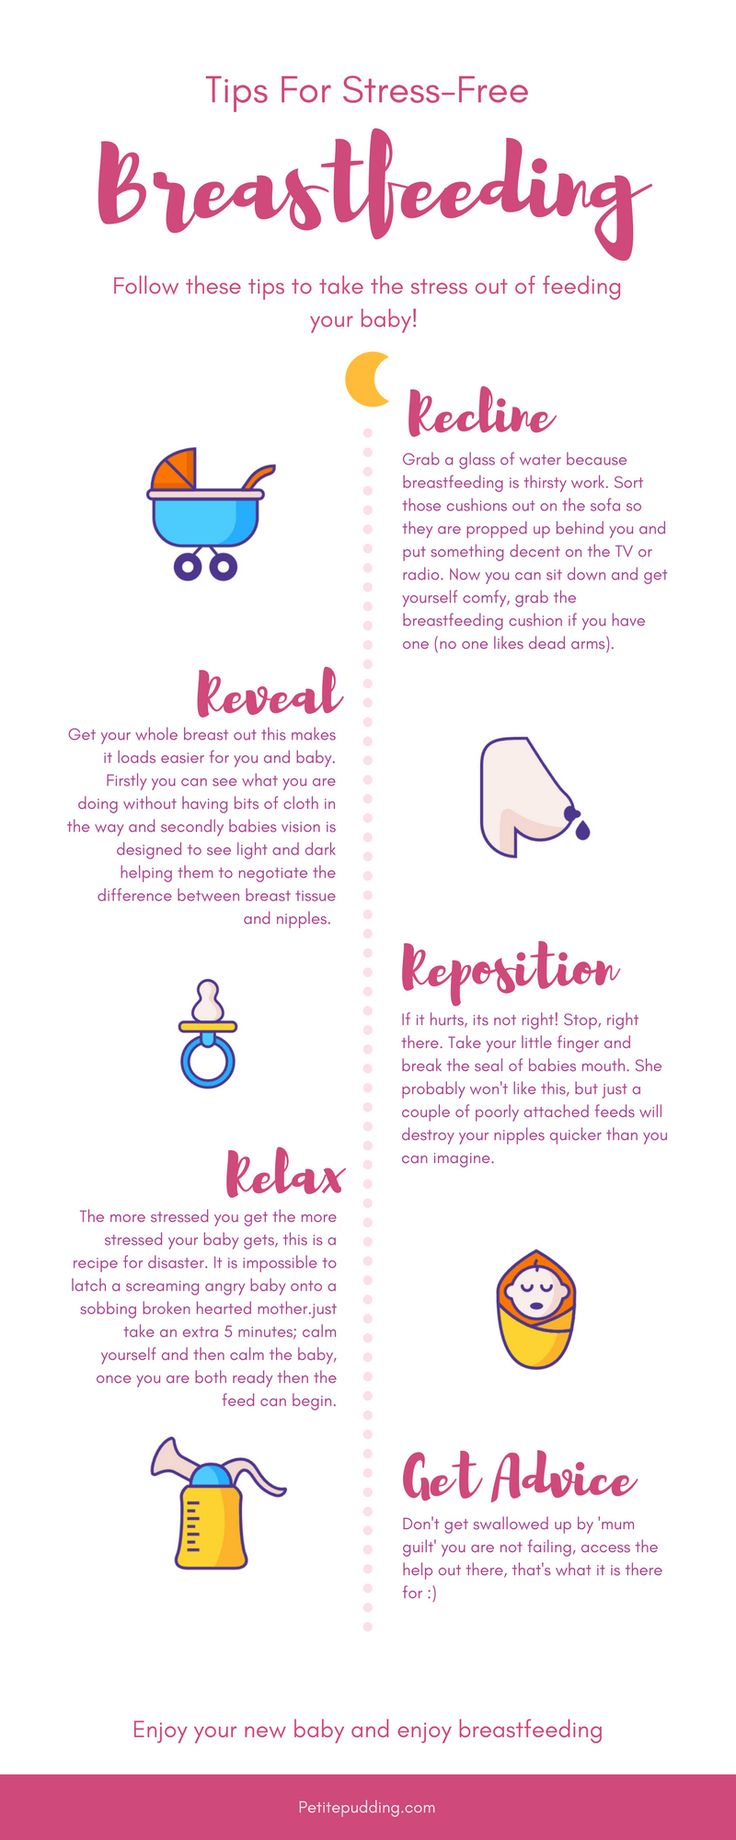 Breastfeeding and fertility fertility breastfeeding advice quot - Looking For A Simple Breastfeeding Guide Some Great Hints And Tips For First Time Mums